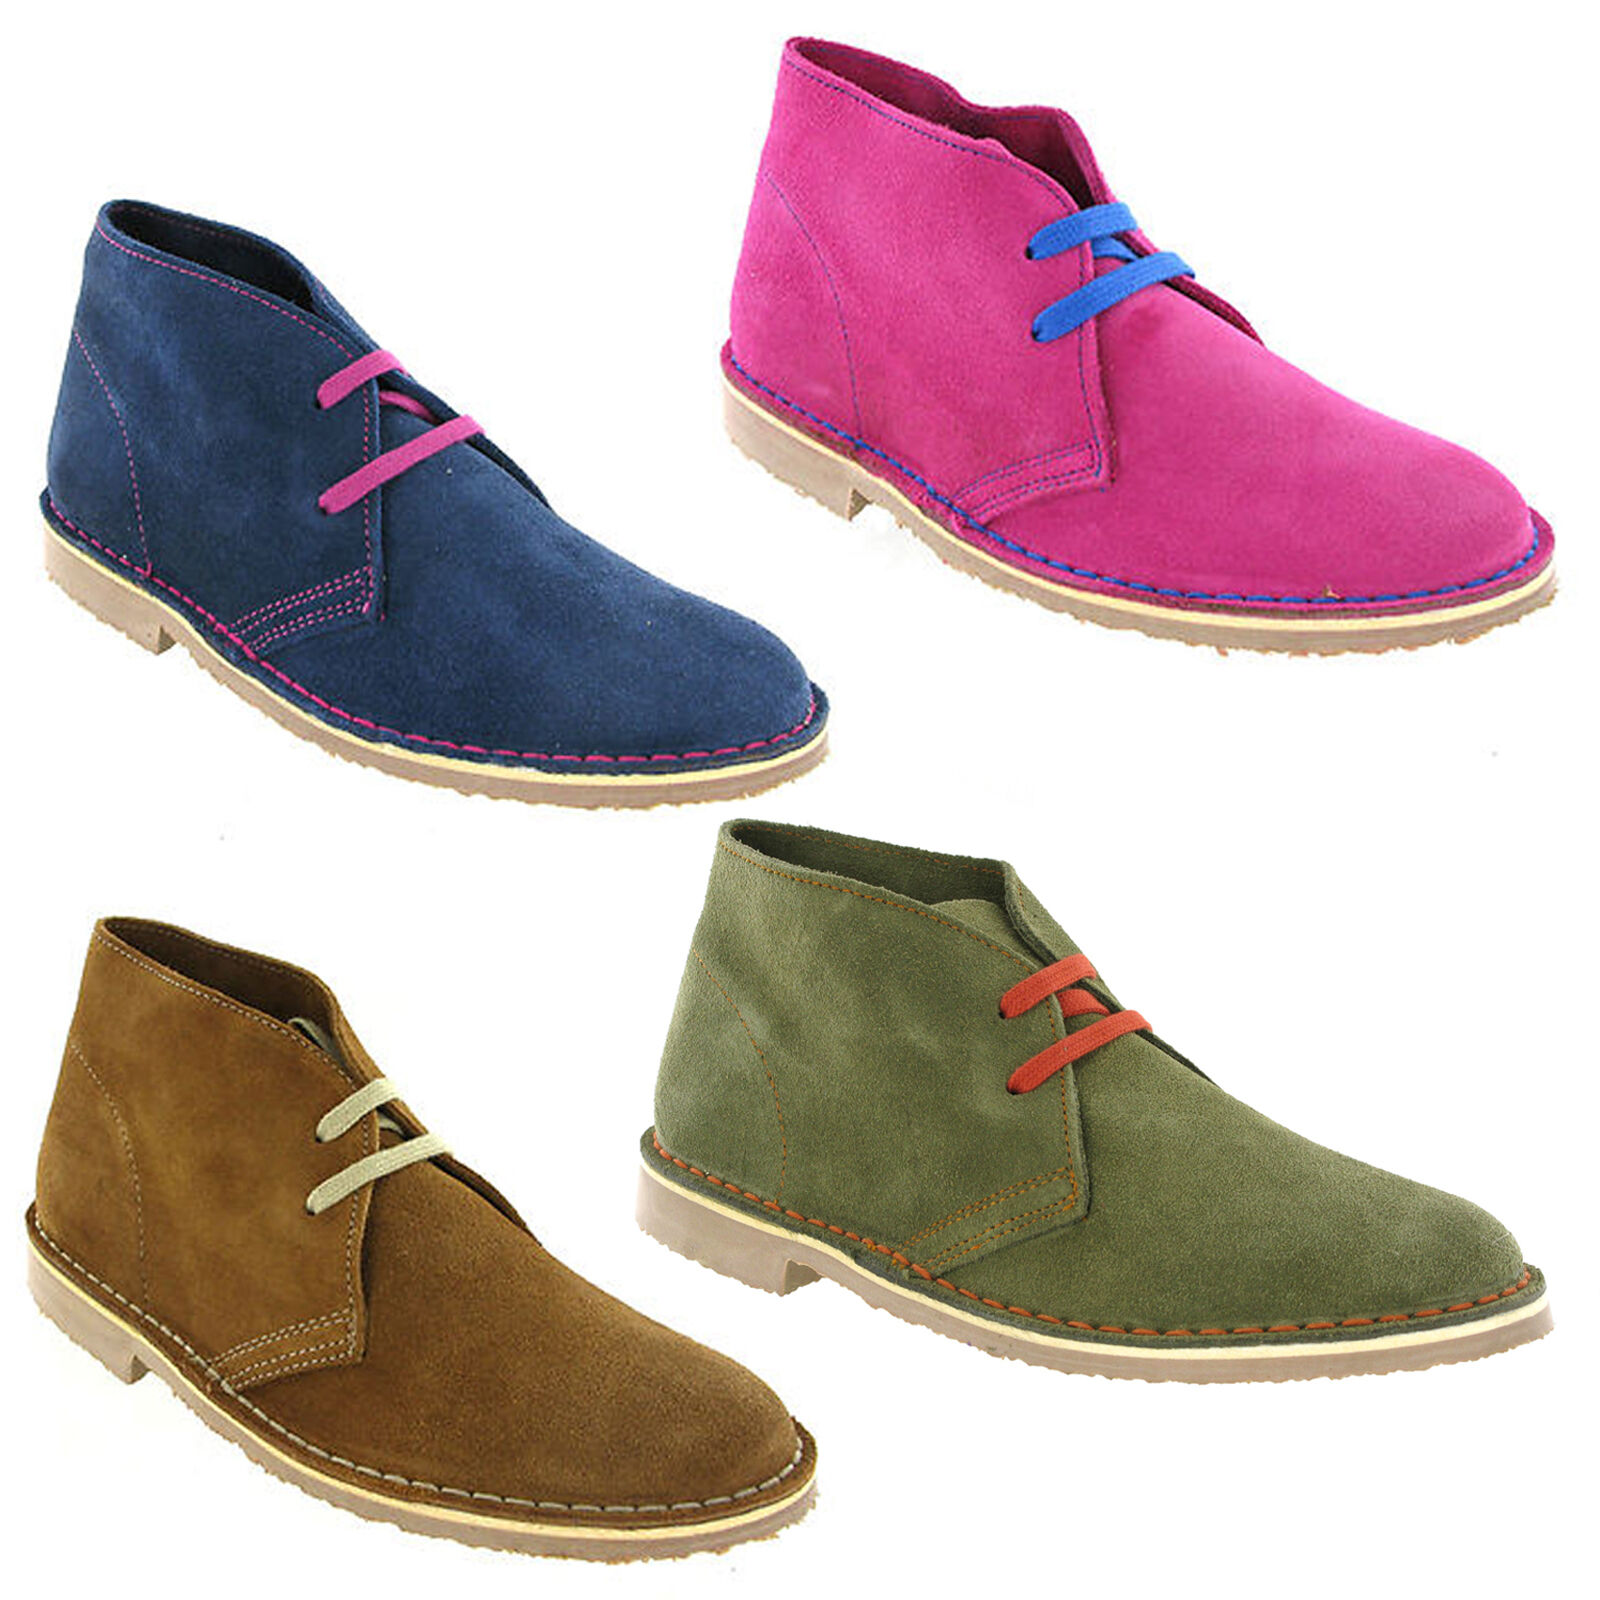 Suede Desert Boots Classic Original Leather Womens Comfort Fit shoes Size 3-9